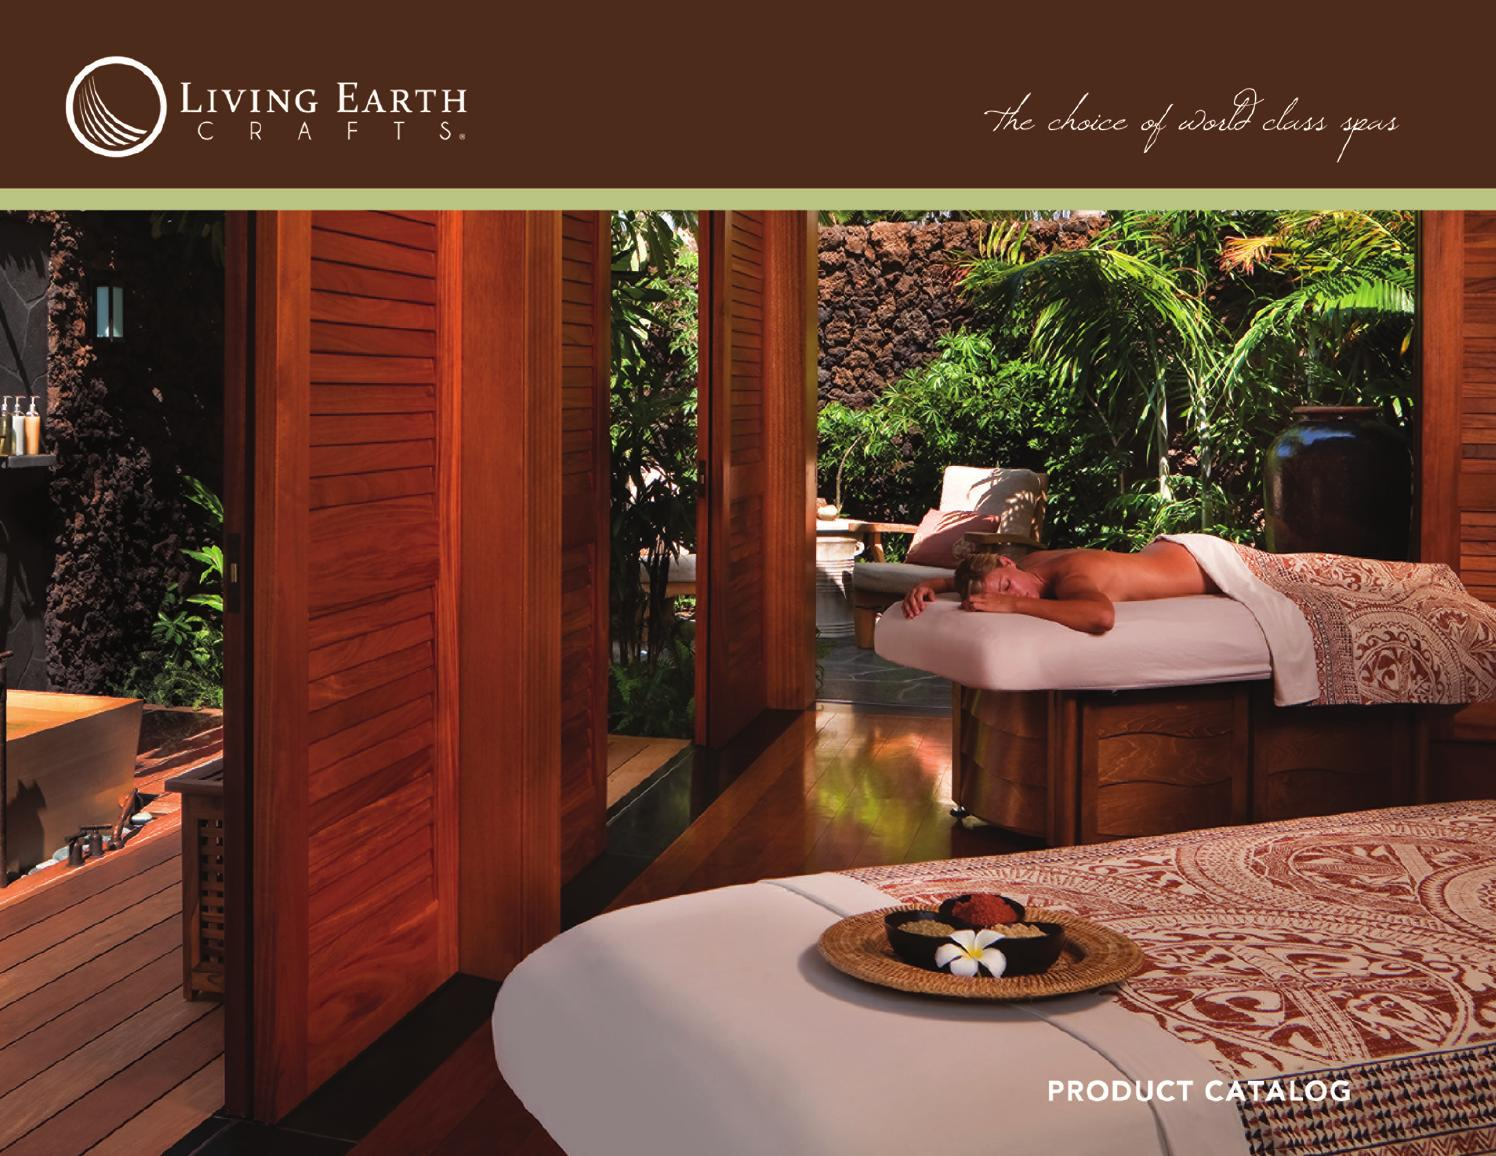 living earth crafts catalog by ray ang issuu. Black Bedroom Furniture Sets. Home Design Ideas